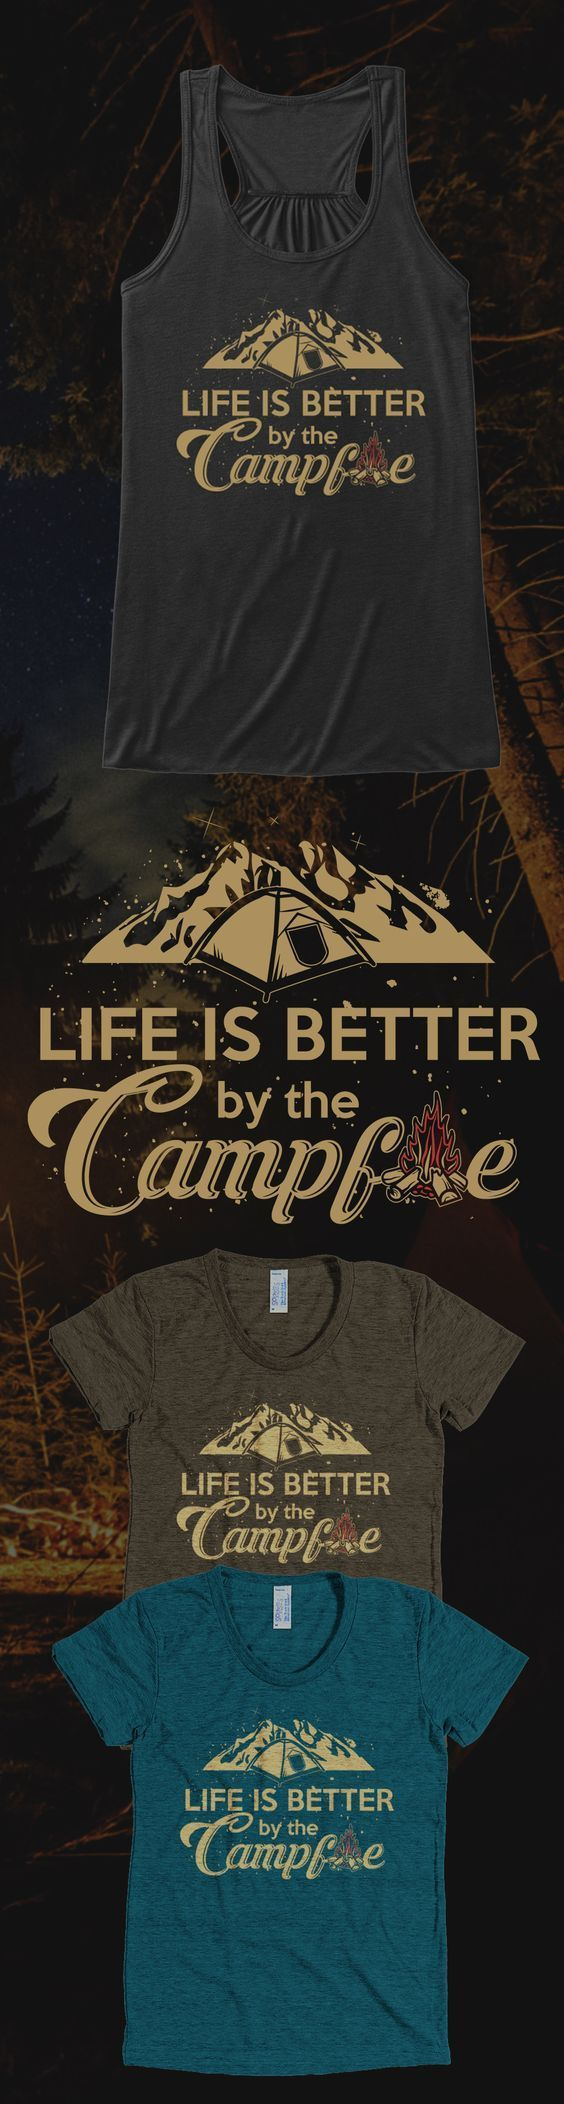 Love camping? Check out this awesome camping t-shirt you will not find anywhere else. Not sold in stores and only 2 days left for free shipping! Grab yours or gift it to a friend, you will both love it :